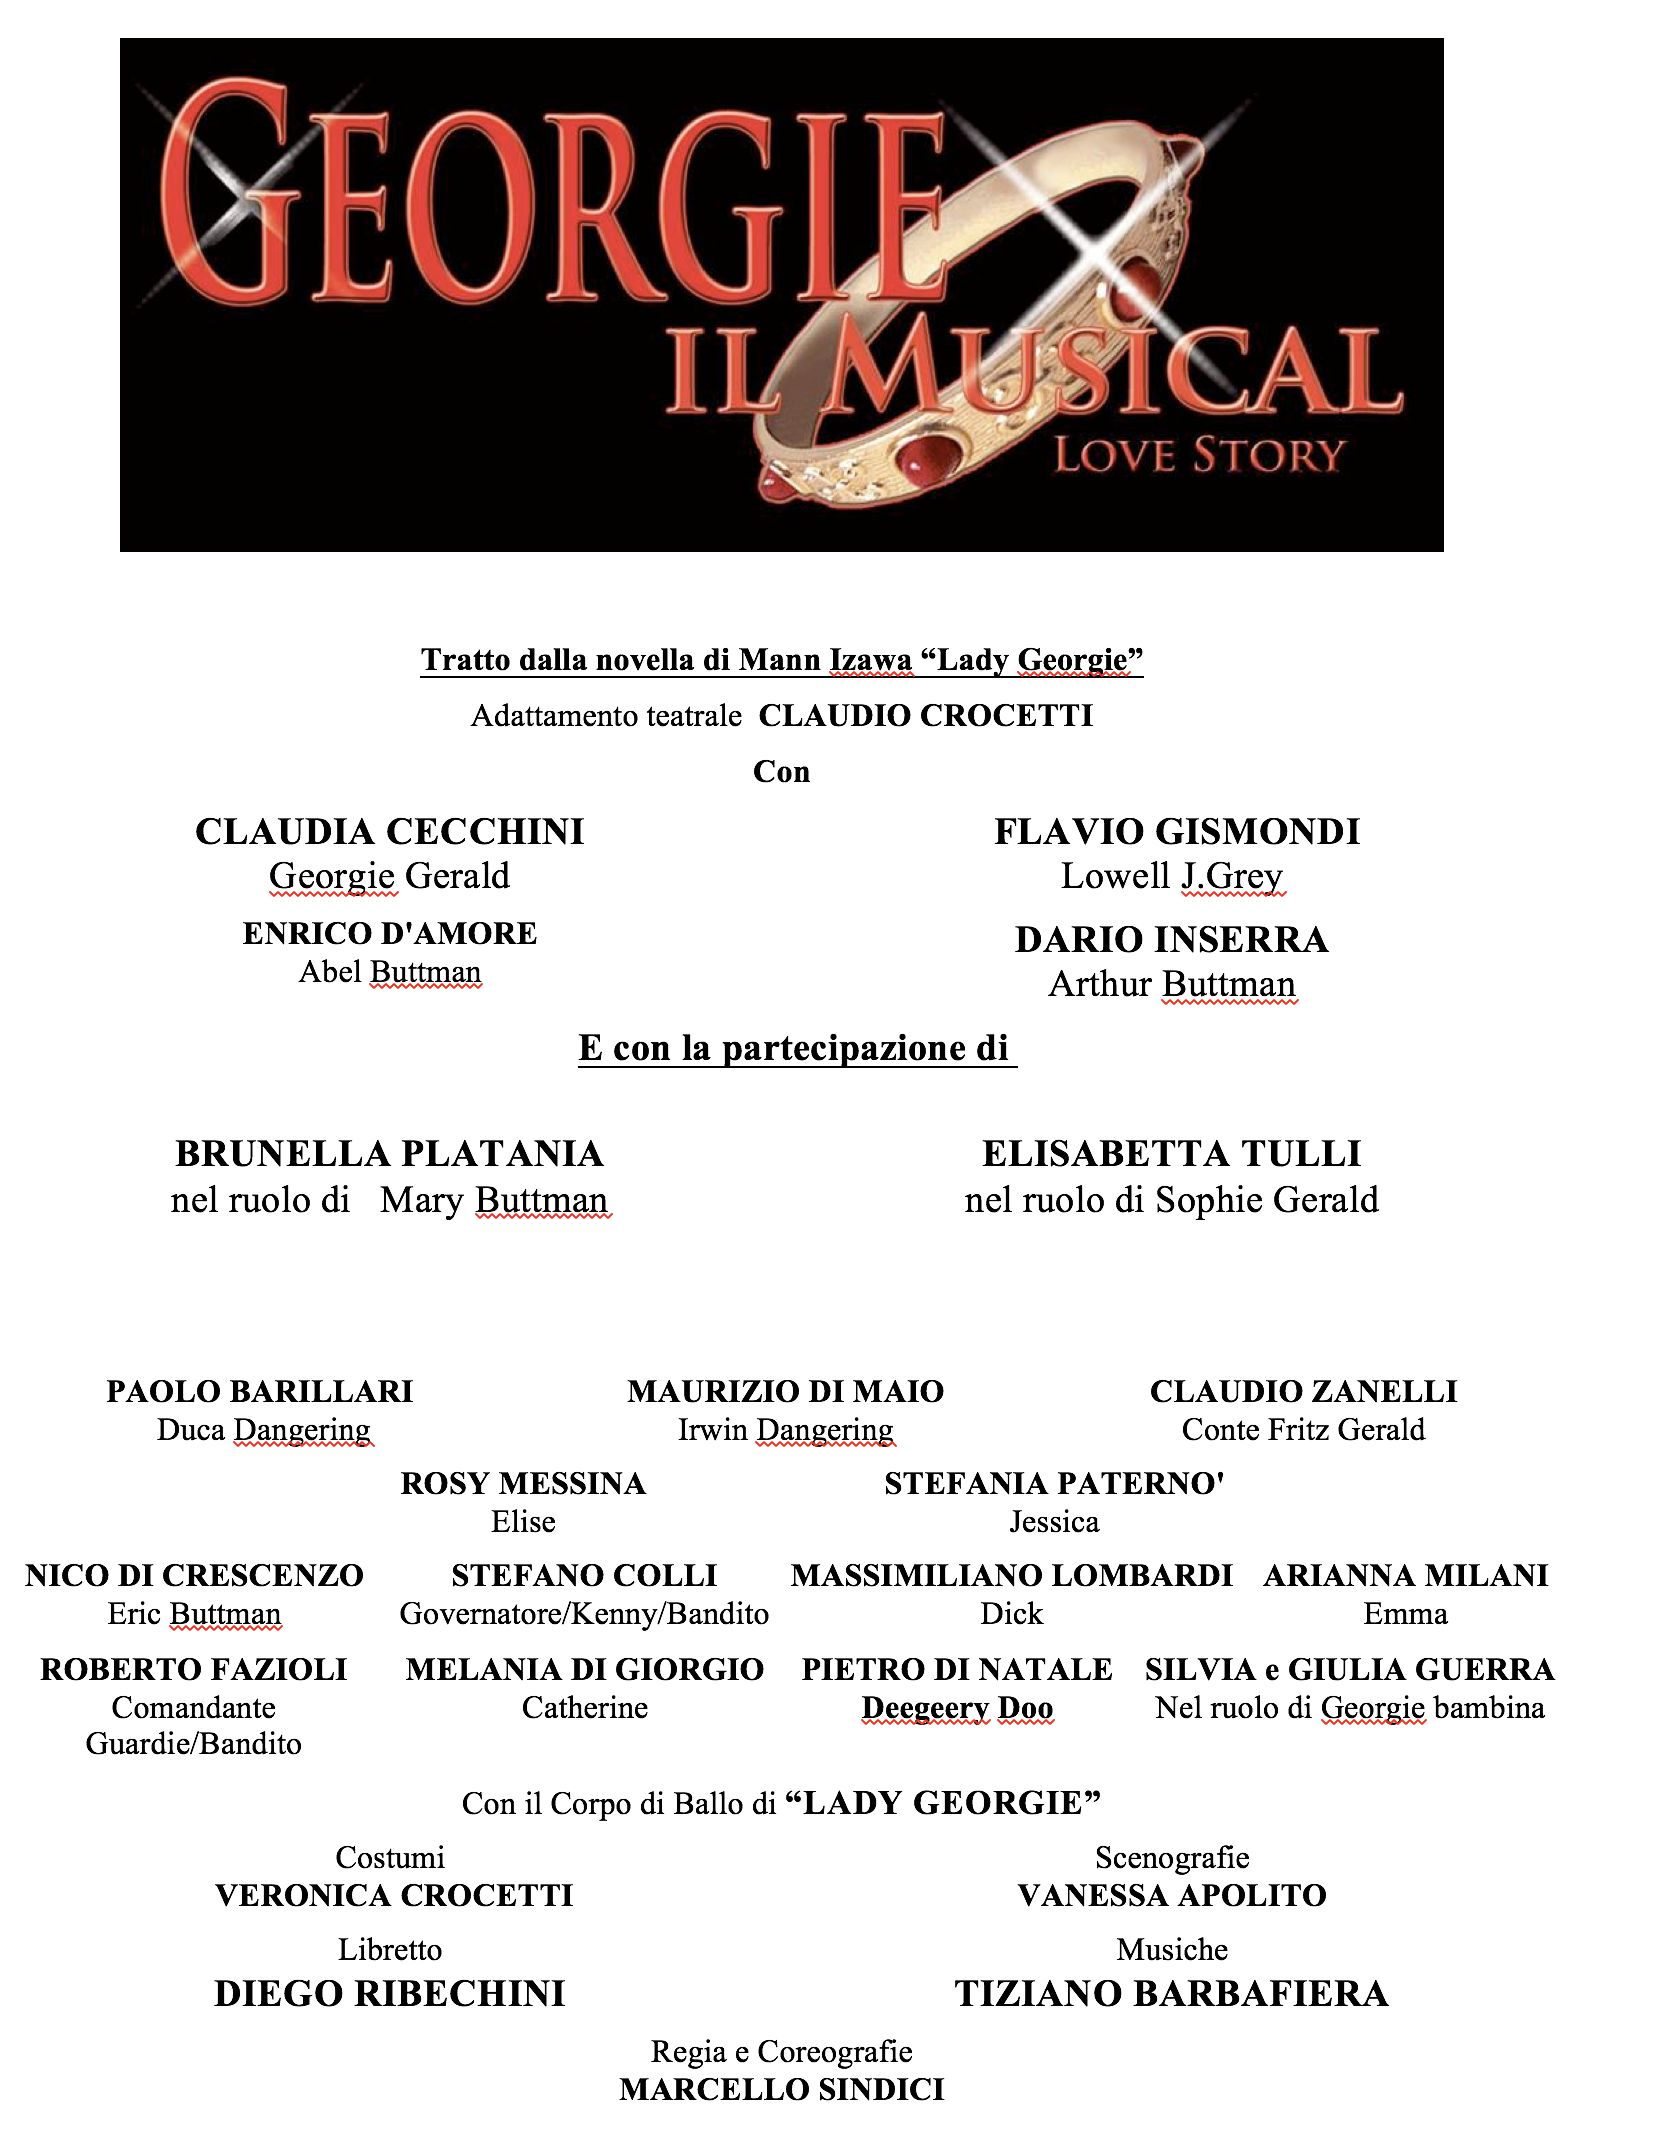 Lady Georgie Il Musical cast